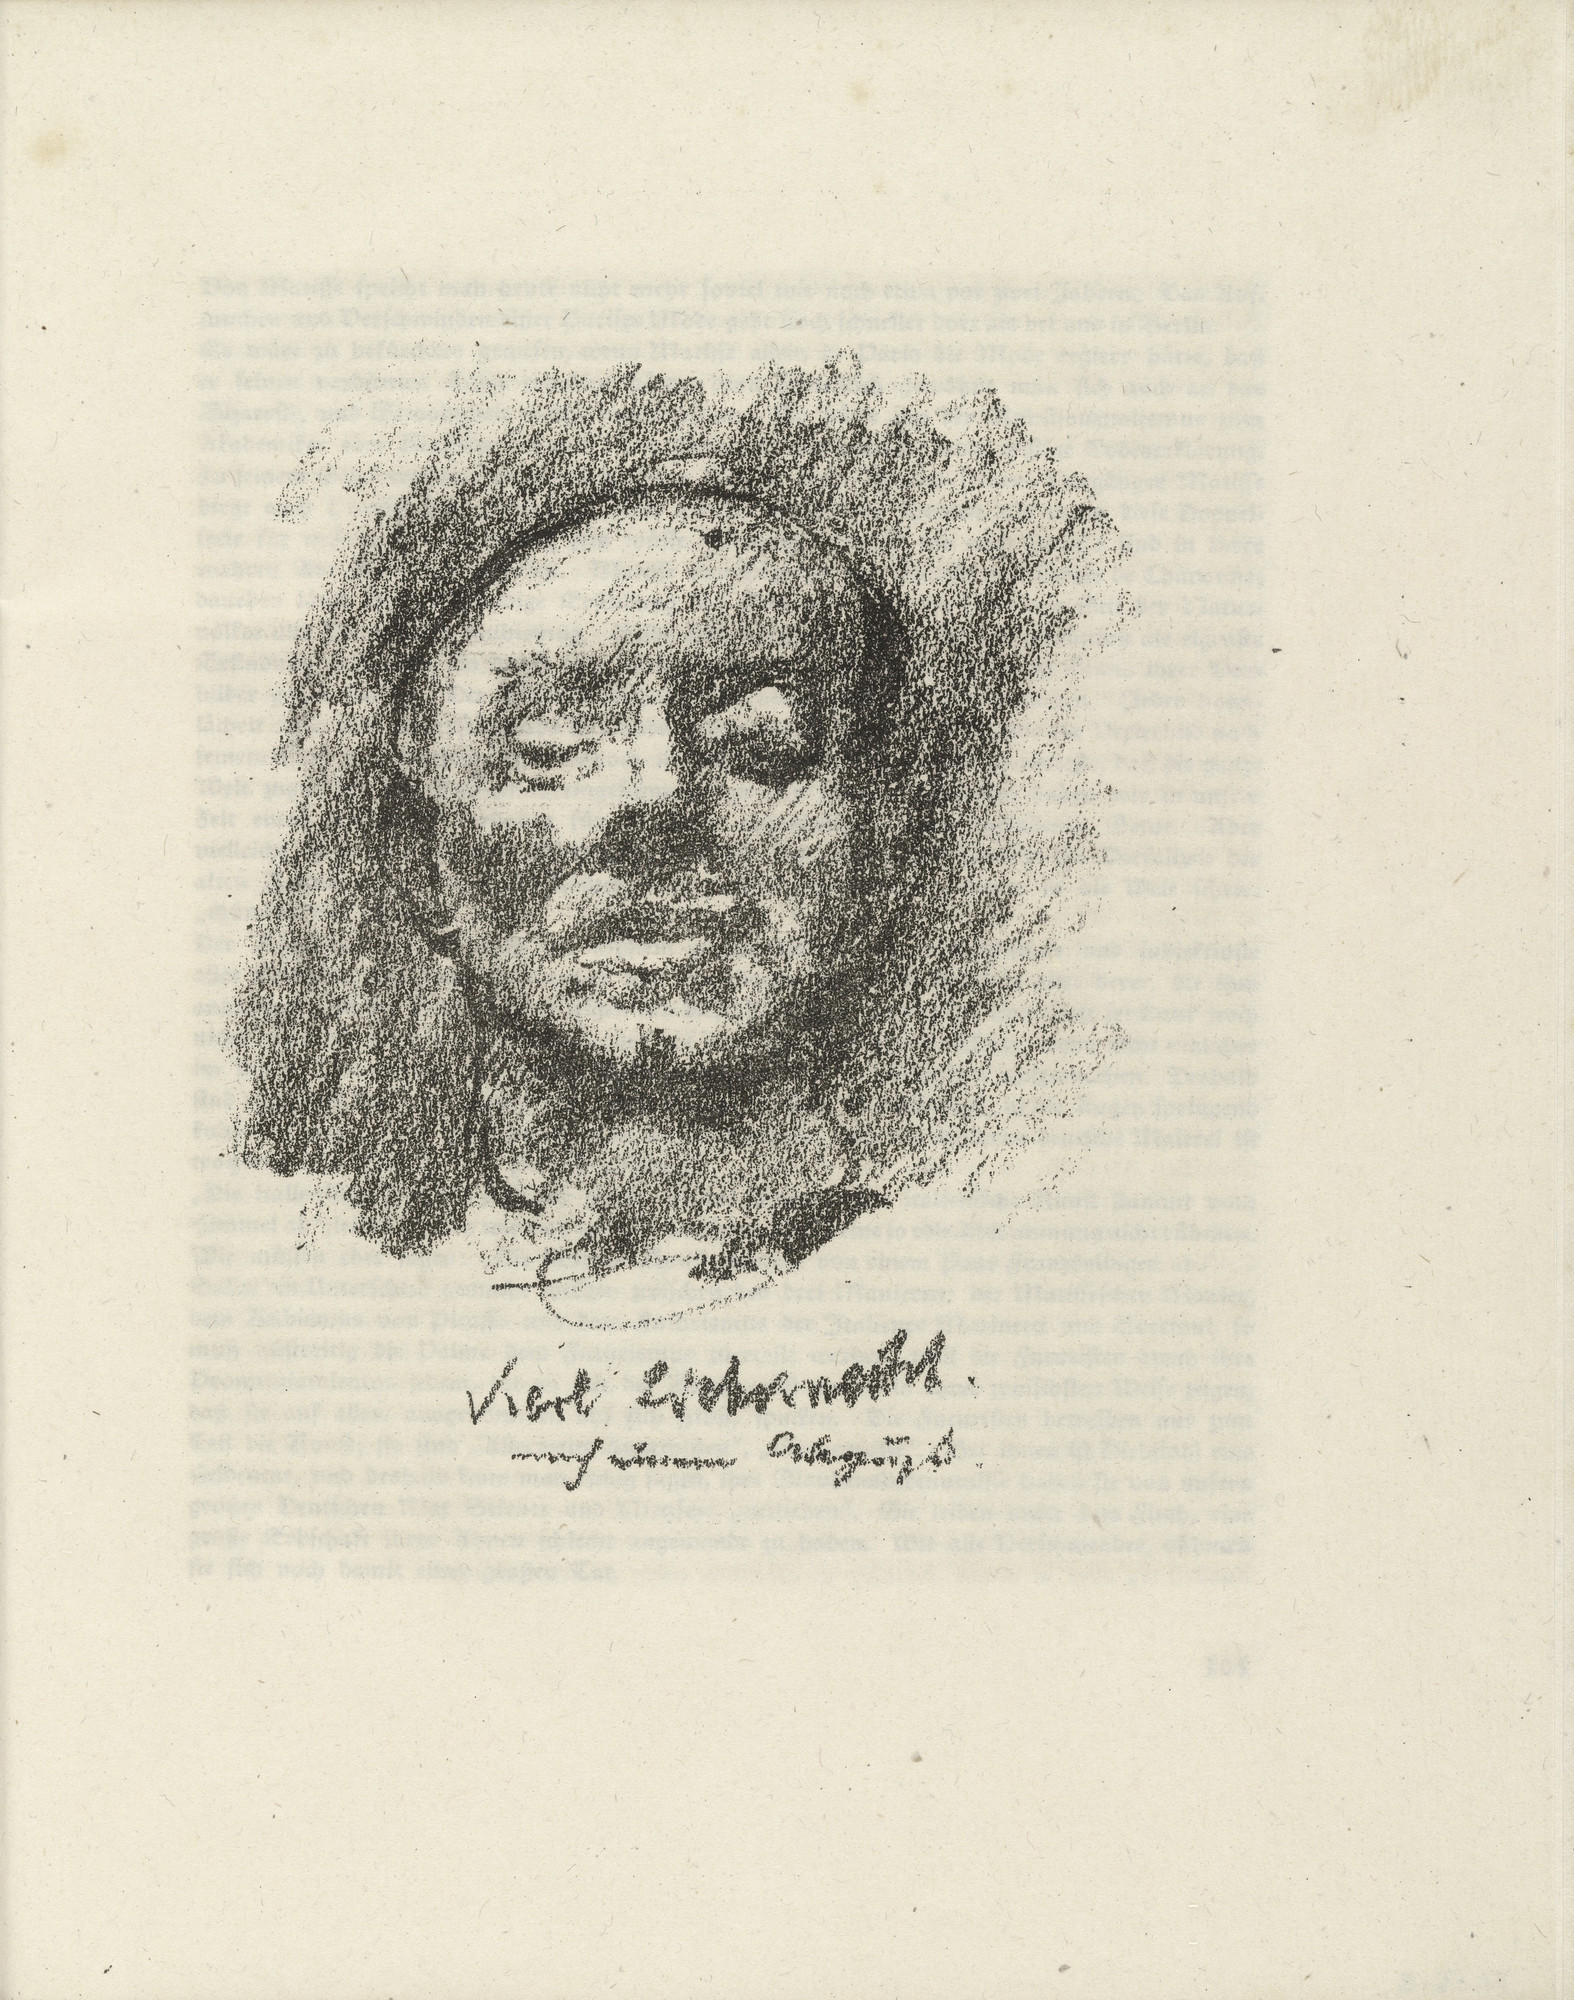 Lovis Corinth. Karl Liebknecht (plate facing page 104) from Gesammelte Schriften (Collected Writings). 1920